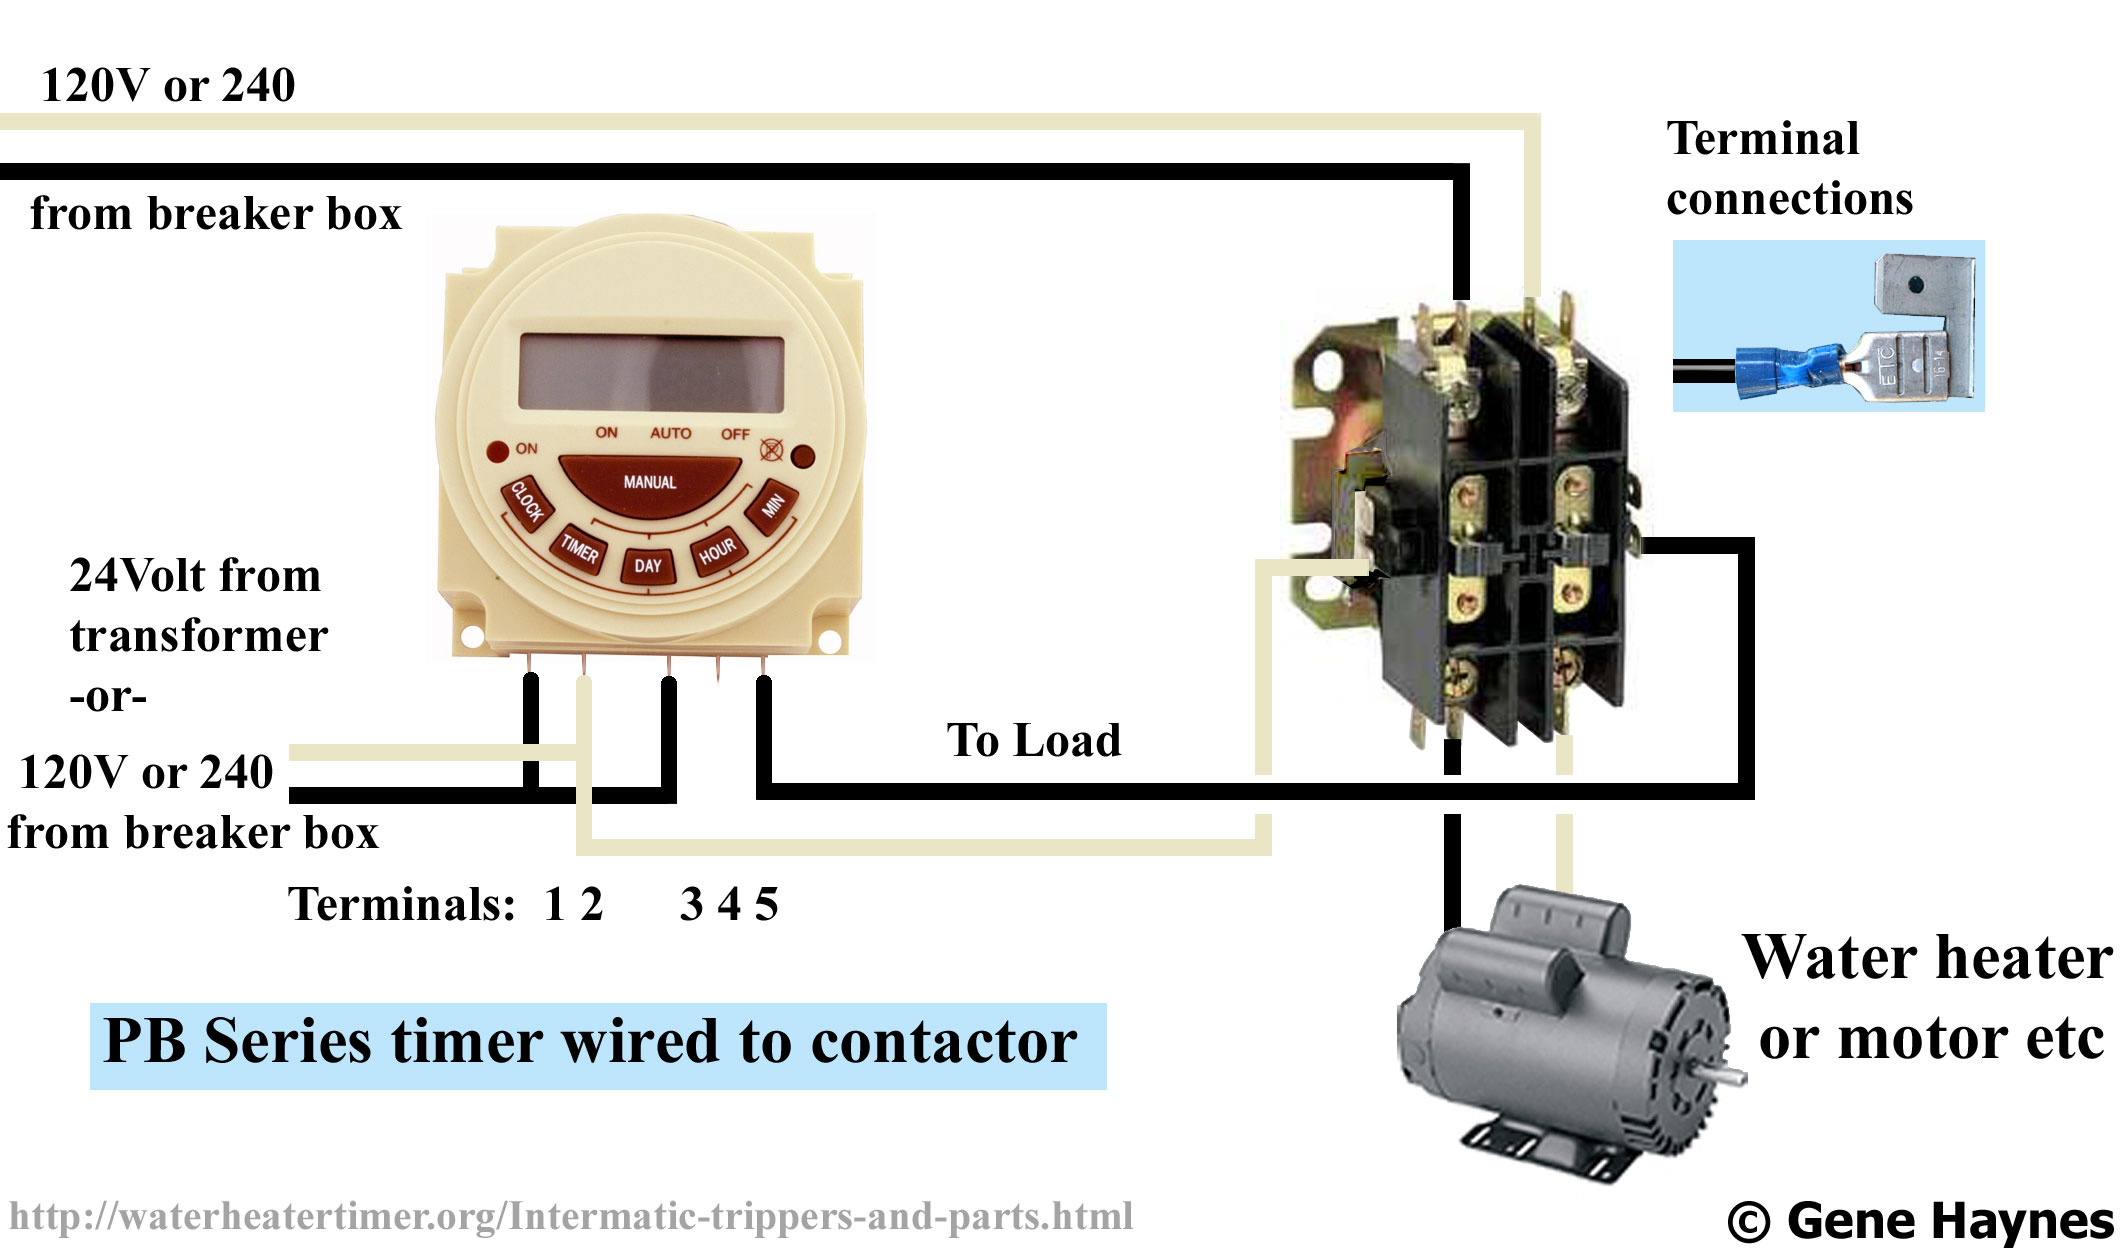 Larger image, Connect modular timer to contactor. PB series  Battery-operated/ pool spa timer 7 programs 7-day 0r 24 hour. 120V or 240V  SPDT NO NC